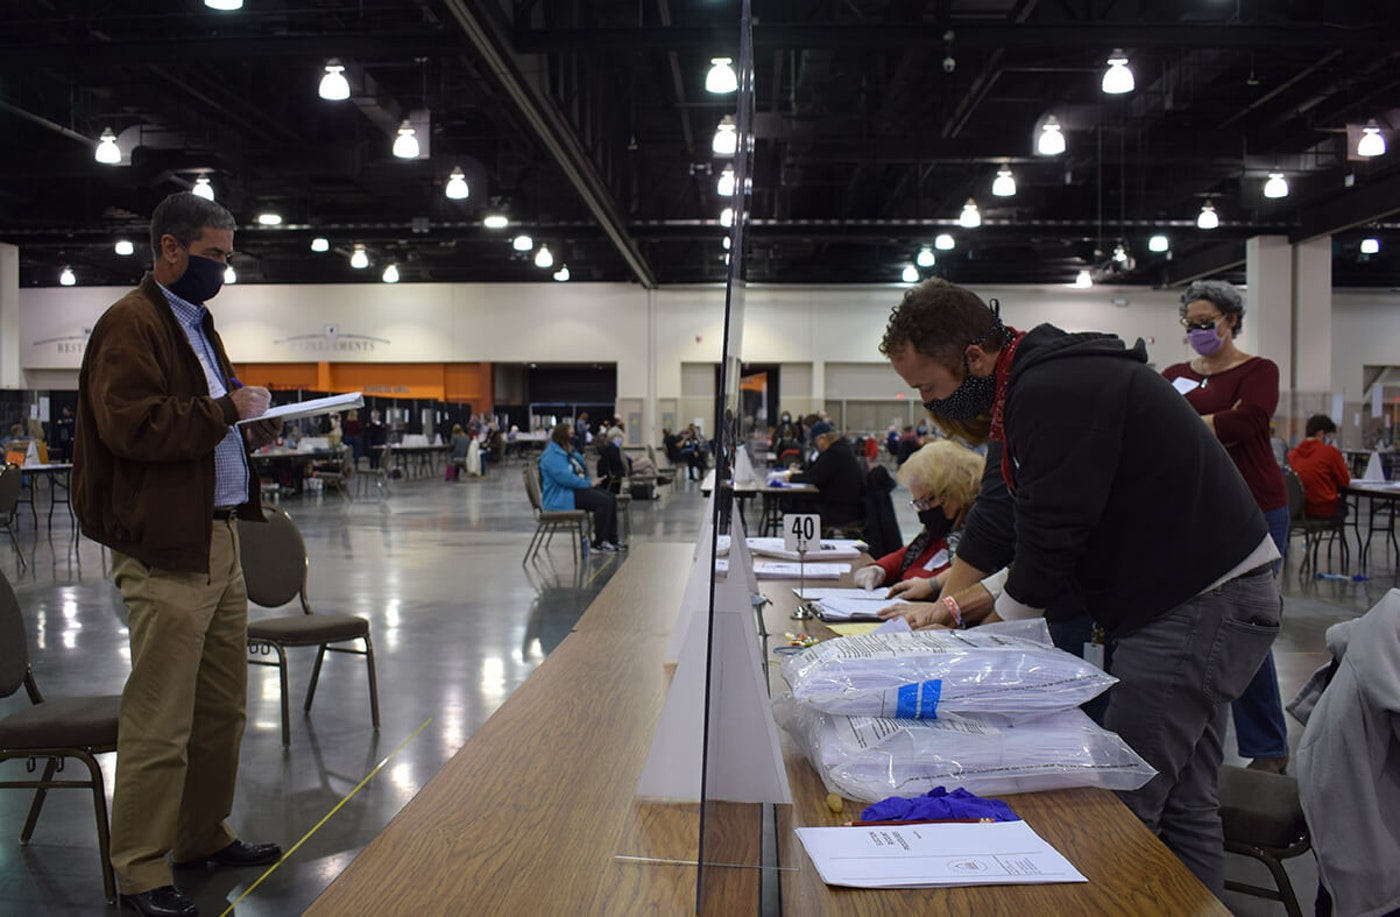 At left, Bill Bridge, a Trump-supporting recount observer, watches election officials work Friday at the Wisconsin Center in Milwaukee. (Photo by Jonathon Sadowski)